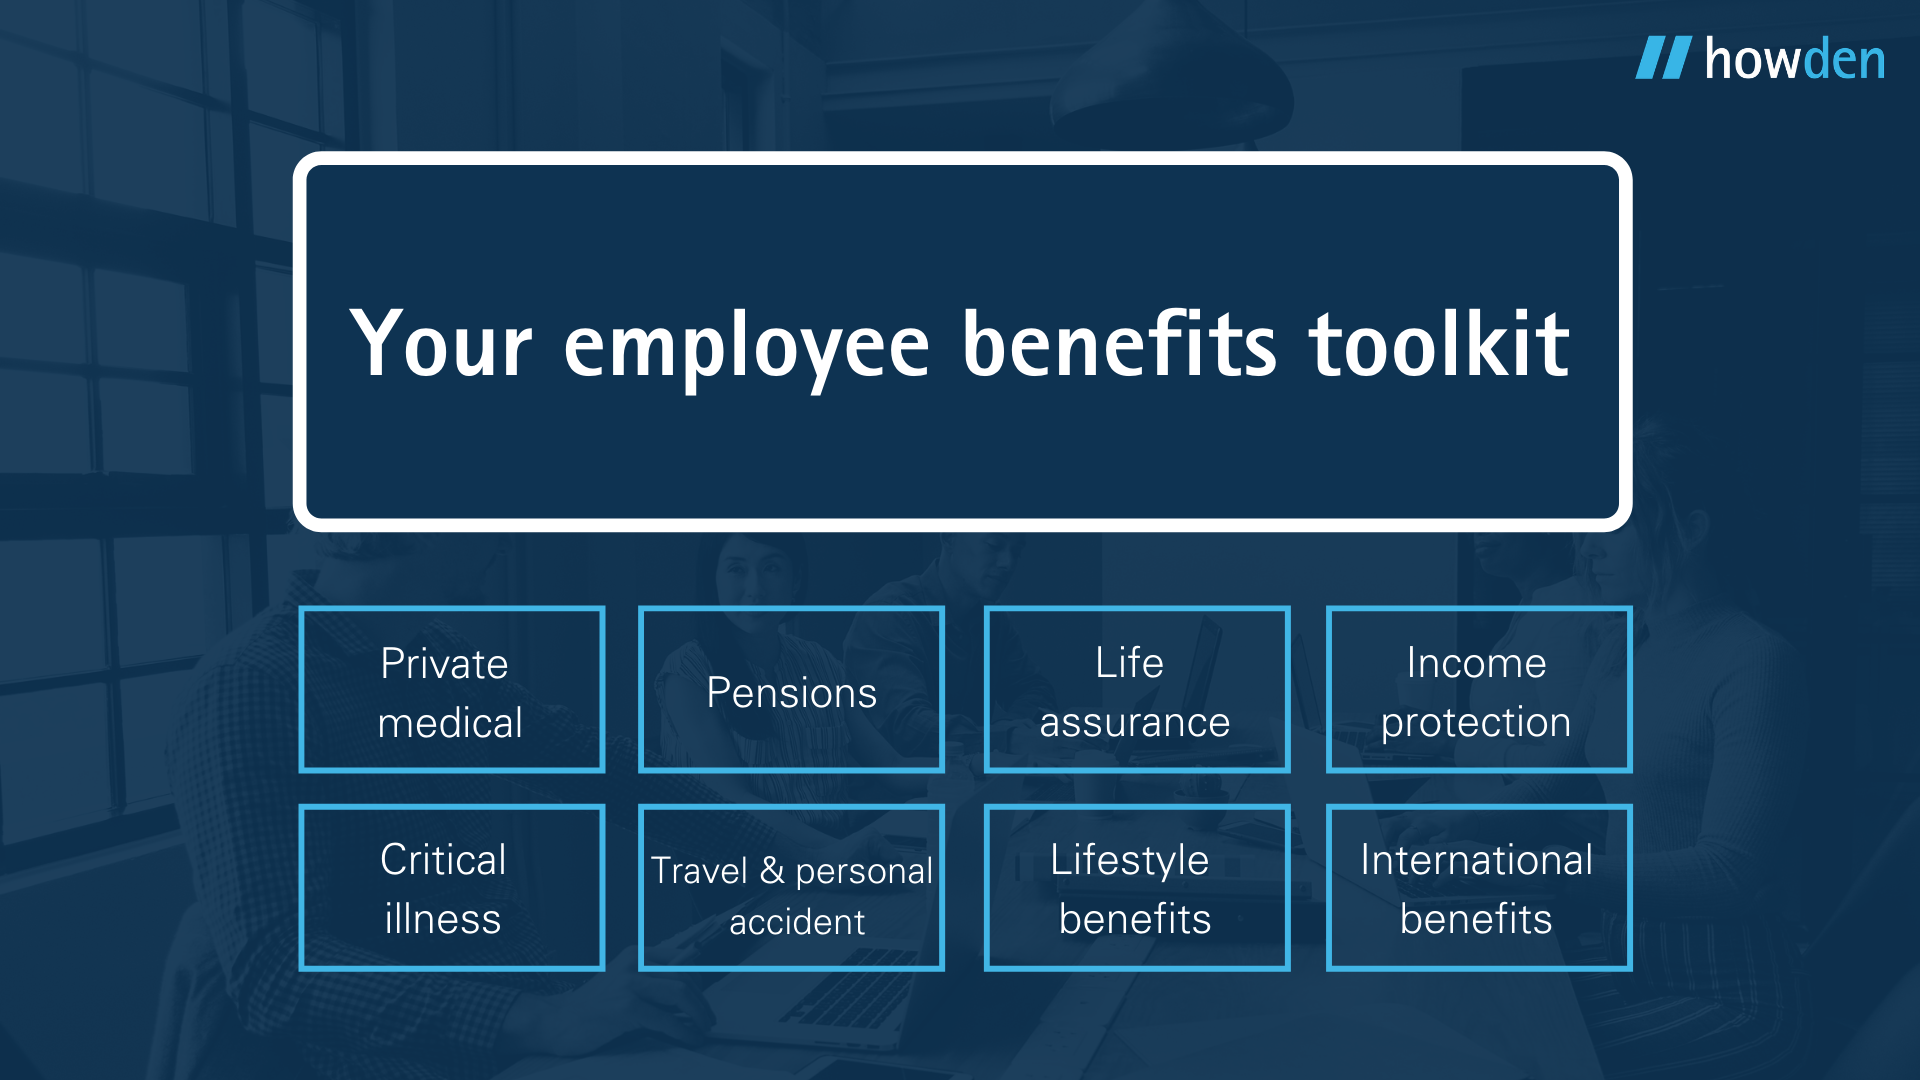 Employee benefits toolkit infographic Howden